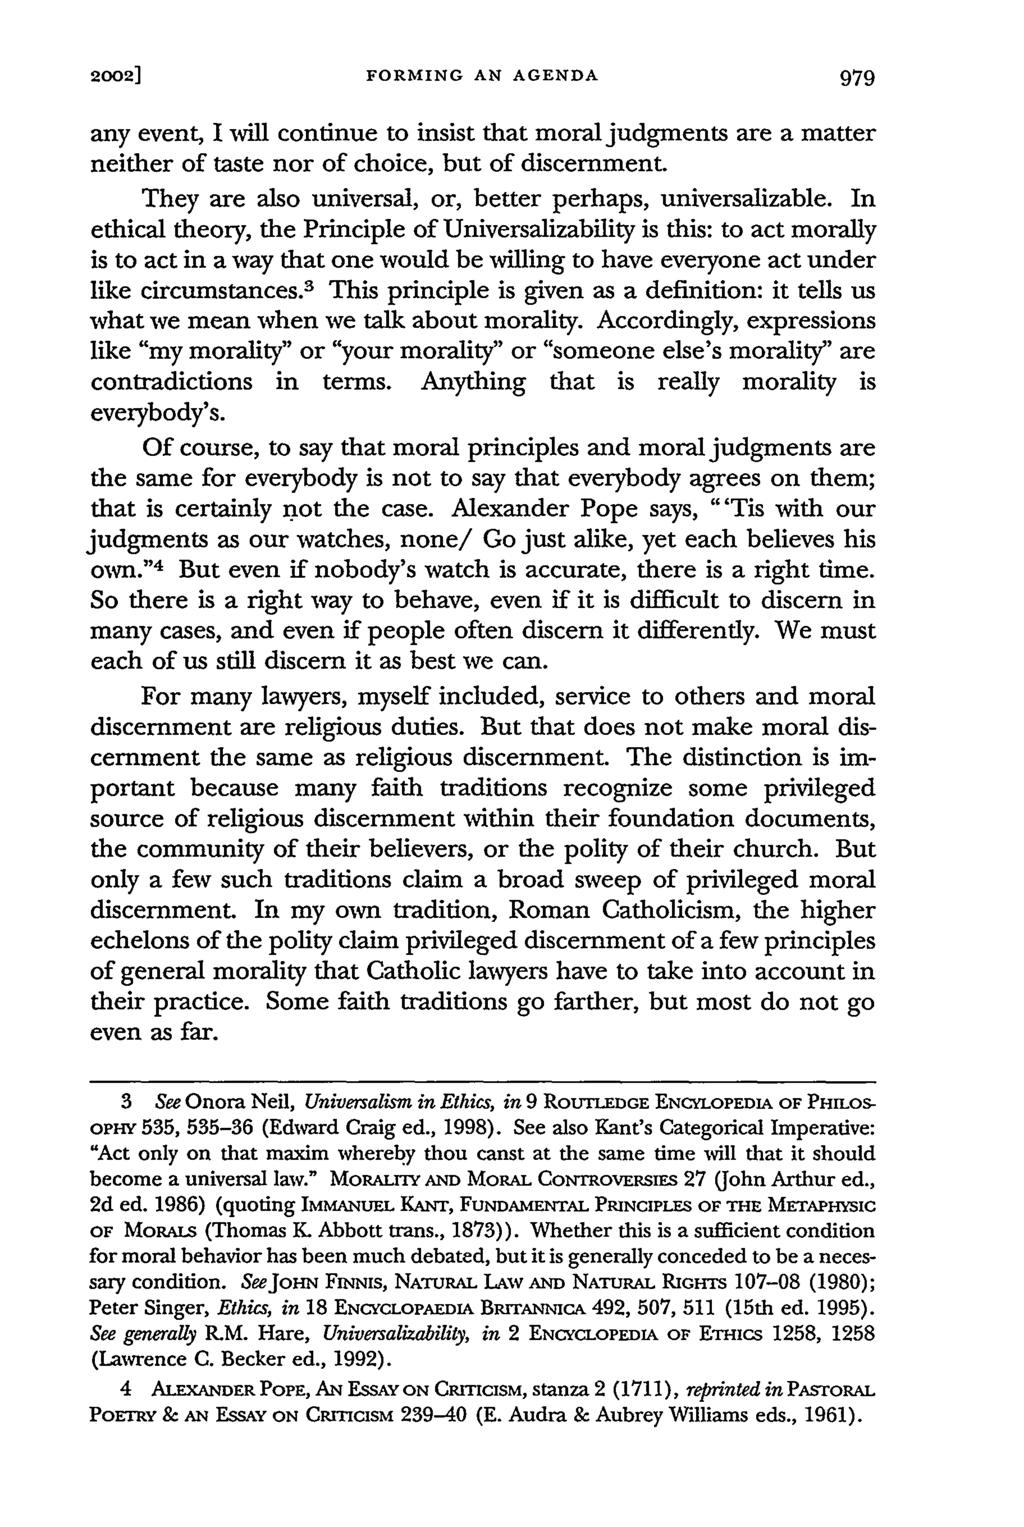 2002] FORMING AN AGENDA any event, I will continue to insist that moral judgments are a matter neither of taste nor of choice, but of discernment.